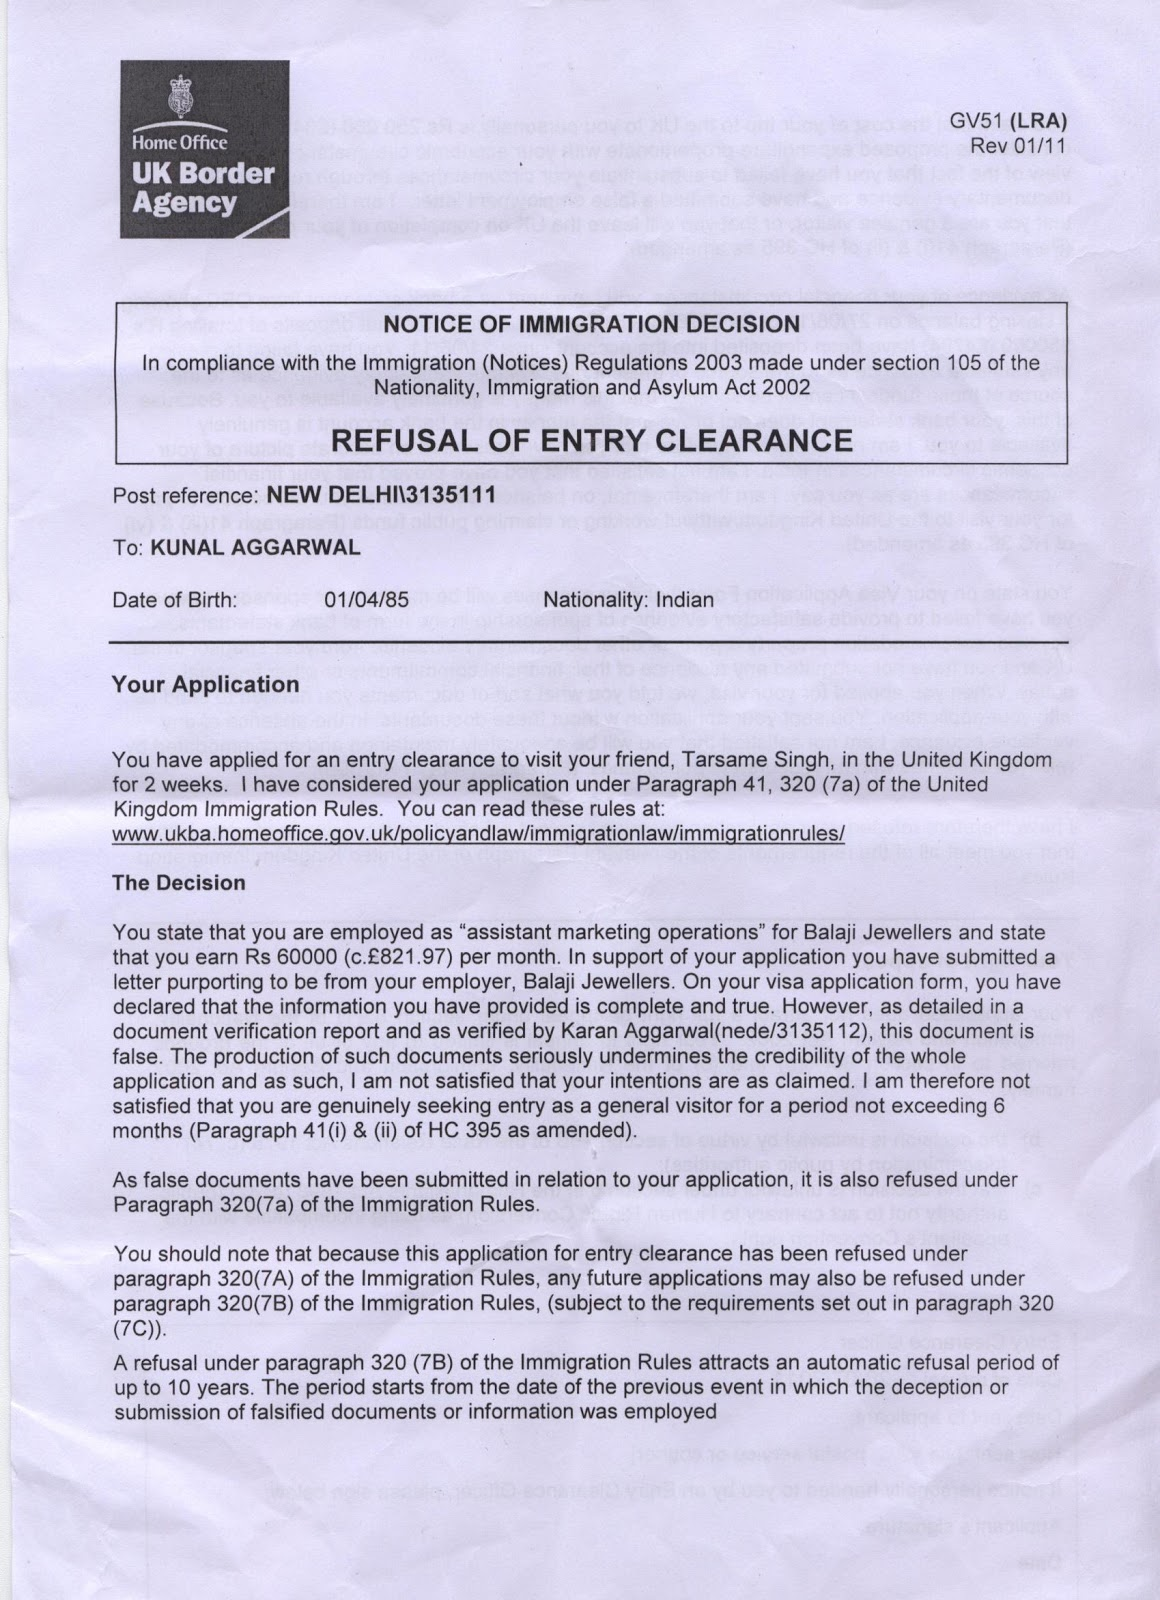 Sample Employment Certification Letter For K 1 Fiance Visa